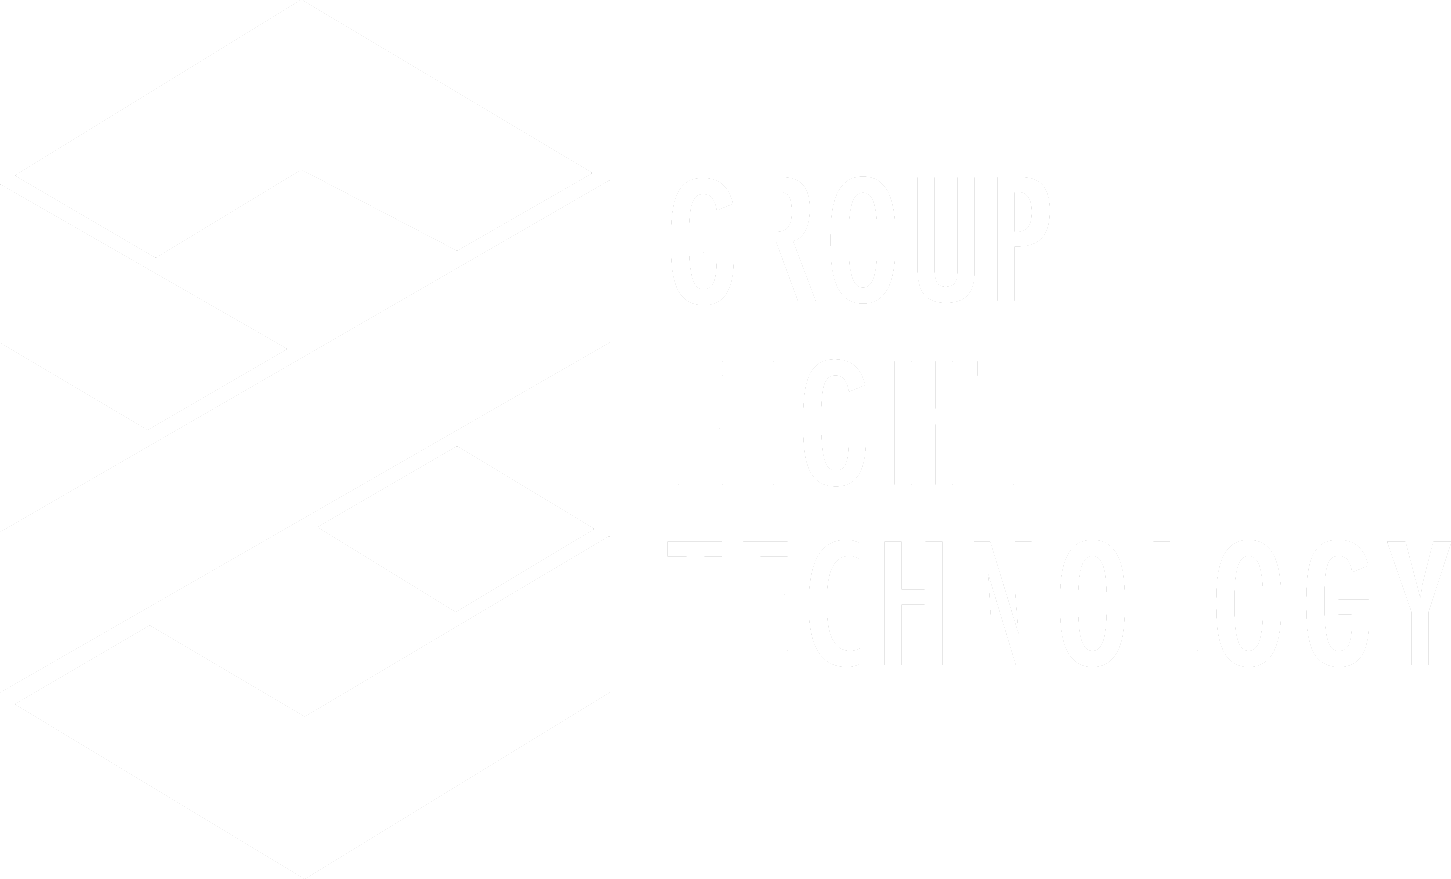 Group 8 Technology